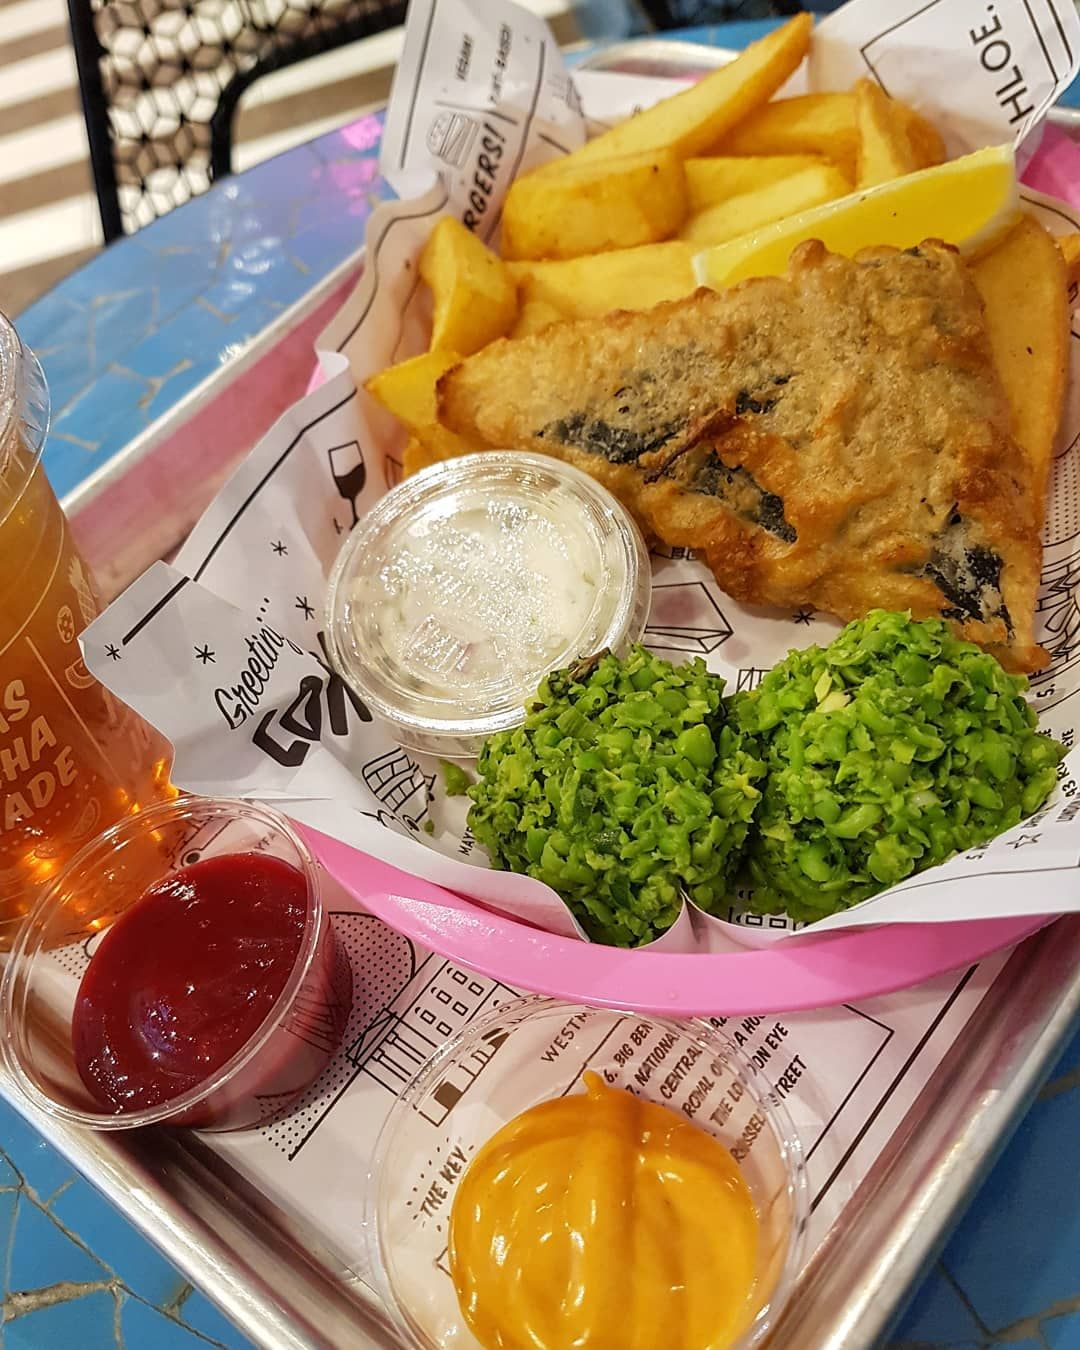 Vegan Fish And Chips Made From Tofu And Nori At By Chloe In Covent Garden London Vegan Fish And Chips Vegan Fish Fish And Chips